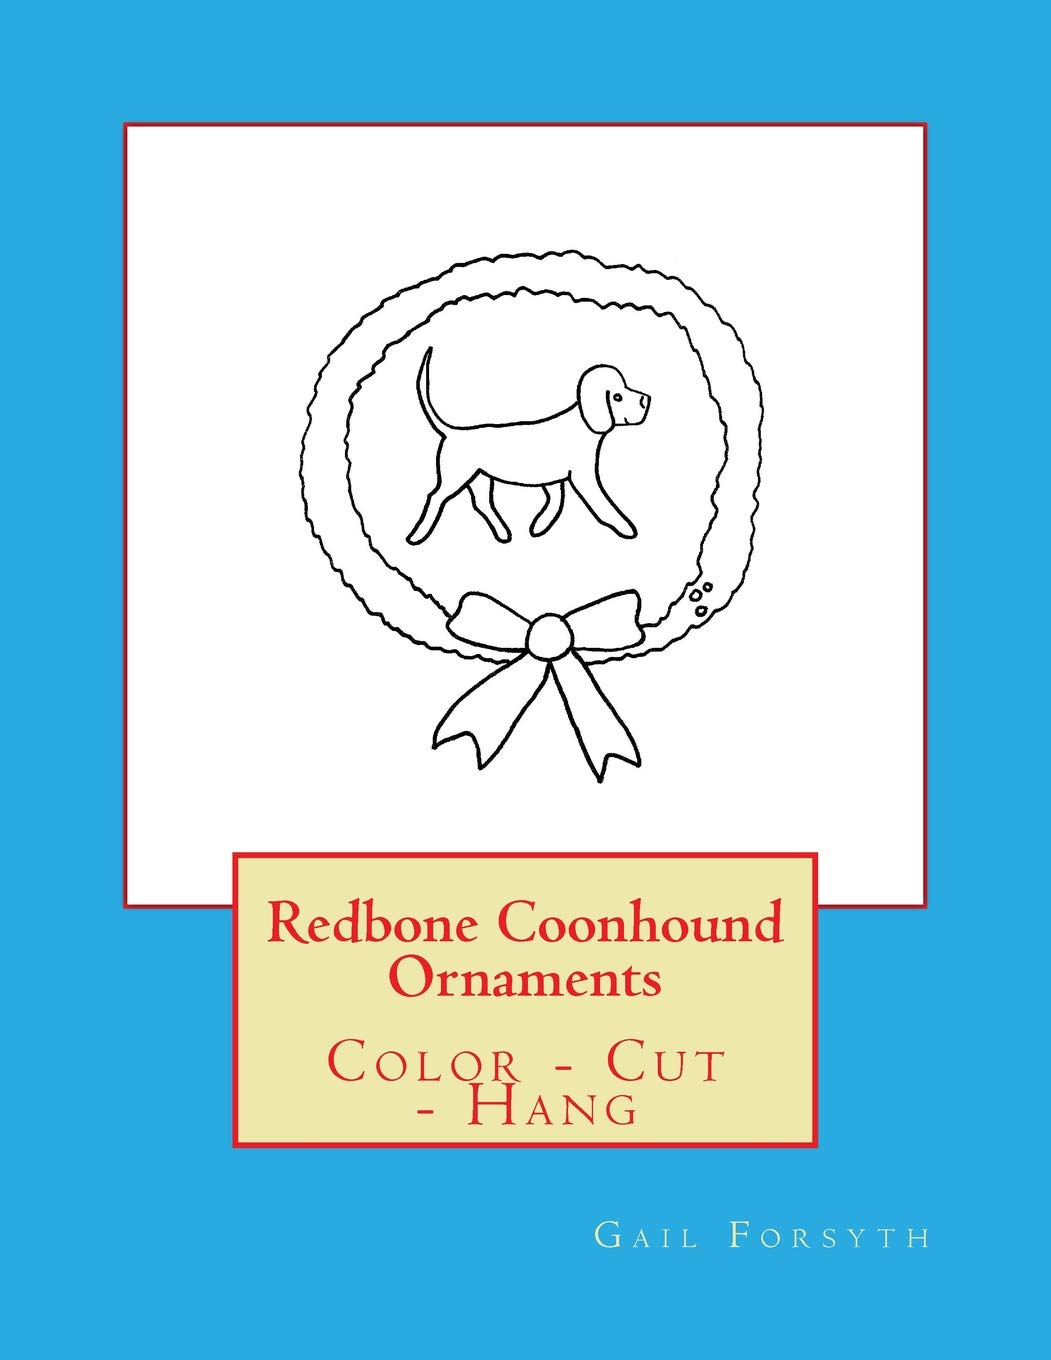 - Redbone Coonhound Ornaments: Color - Cut - Hang: Gail Forsyth